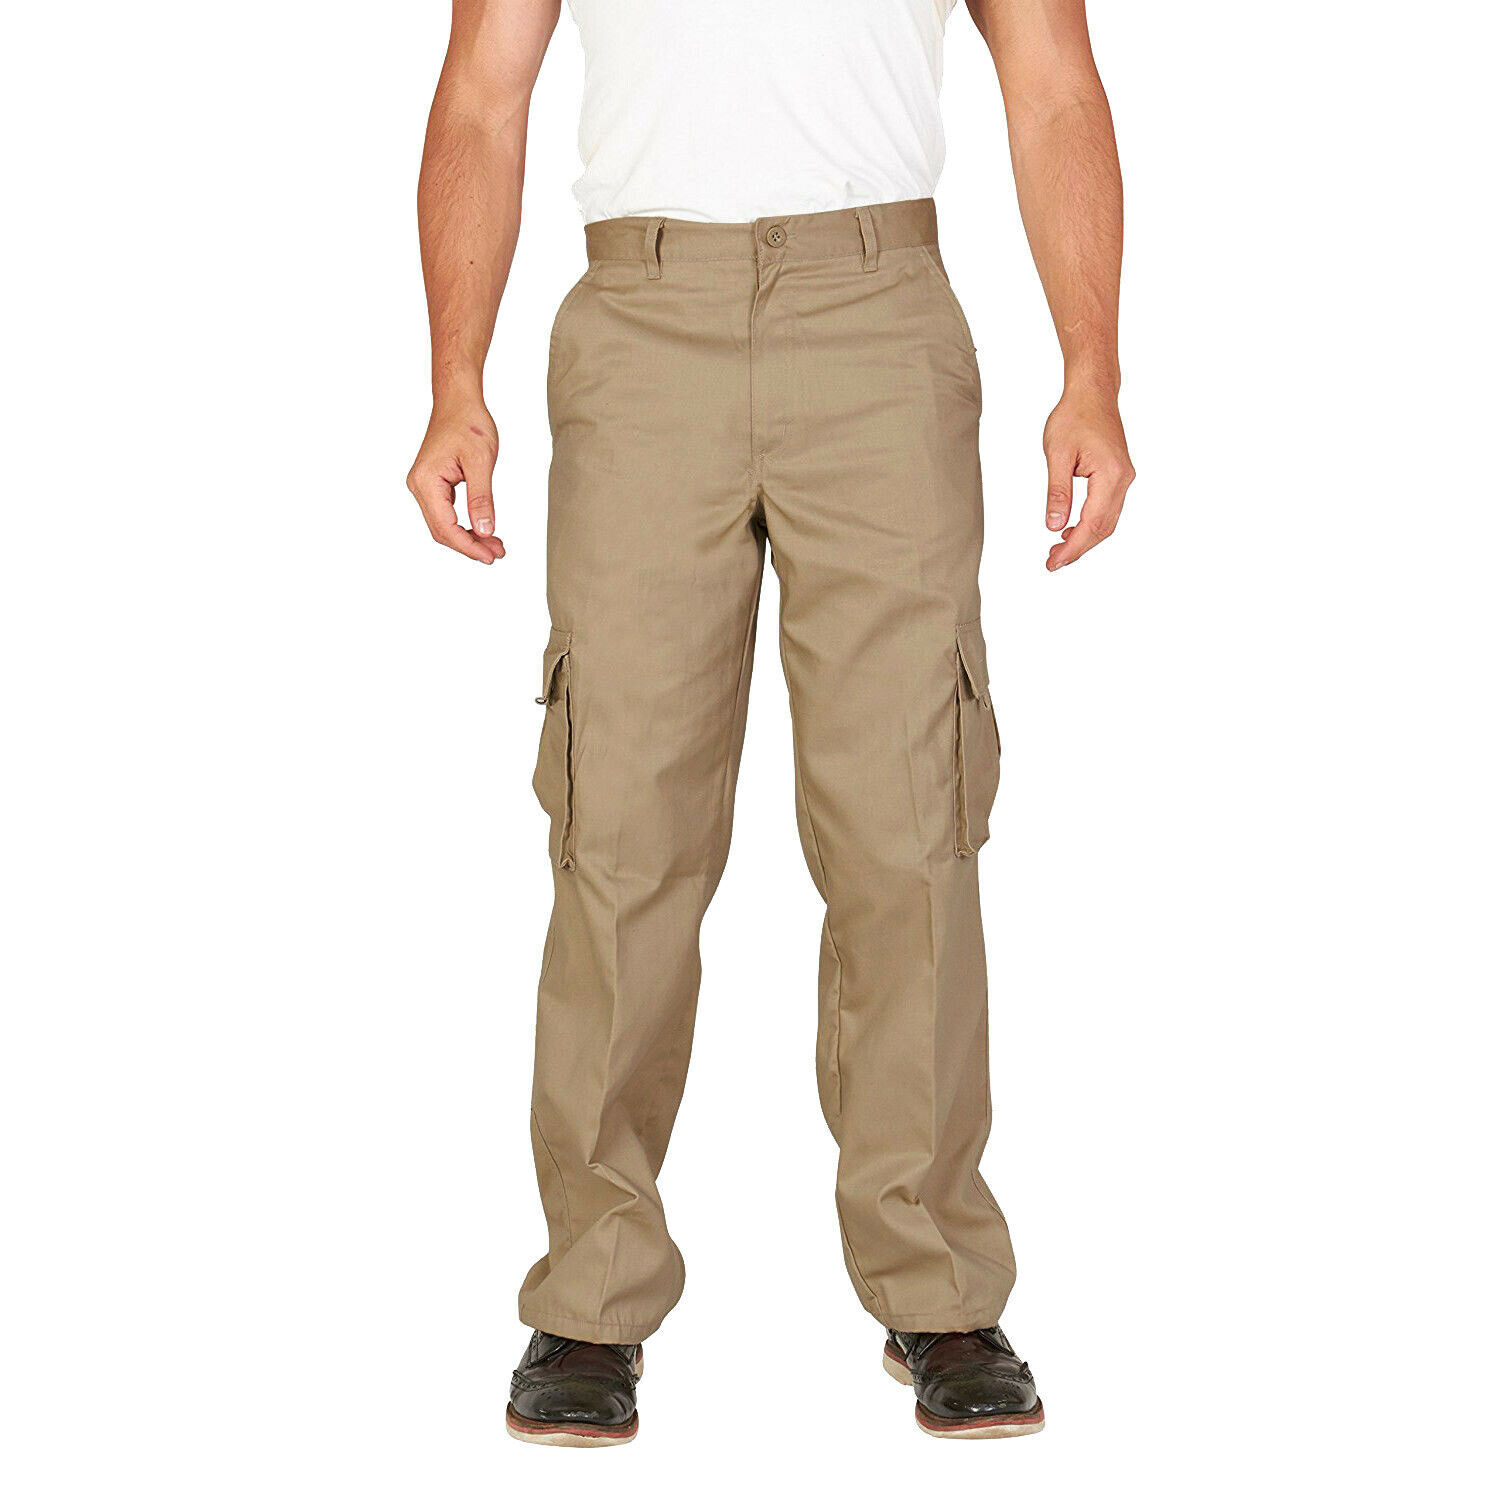 Men's Classic Slim Fit Casual Military Army Twill Trousers Work Cargo Pants